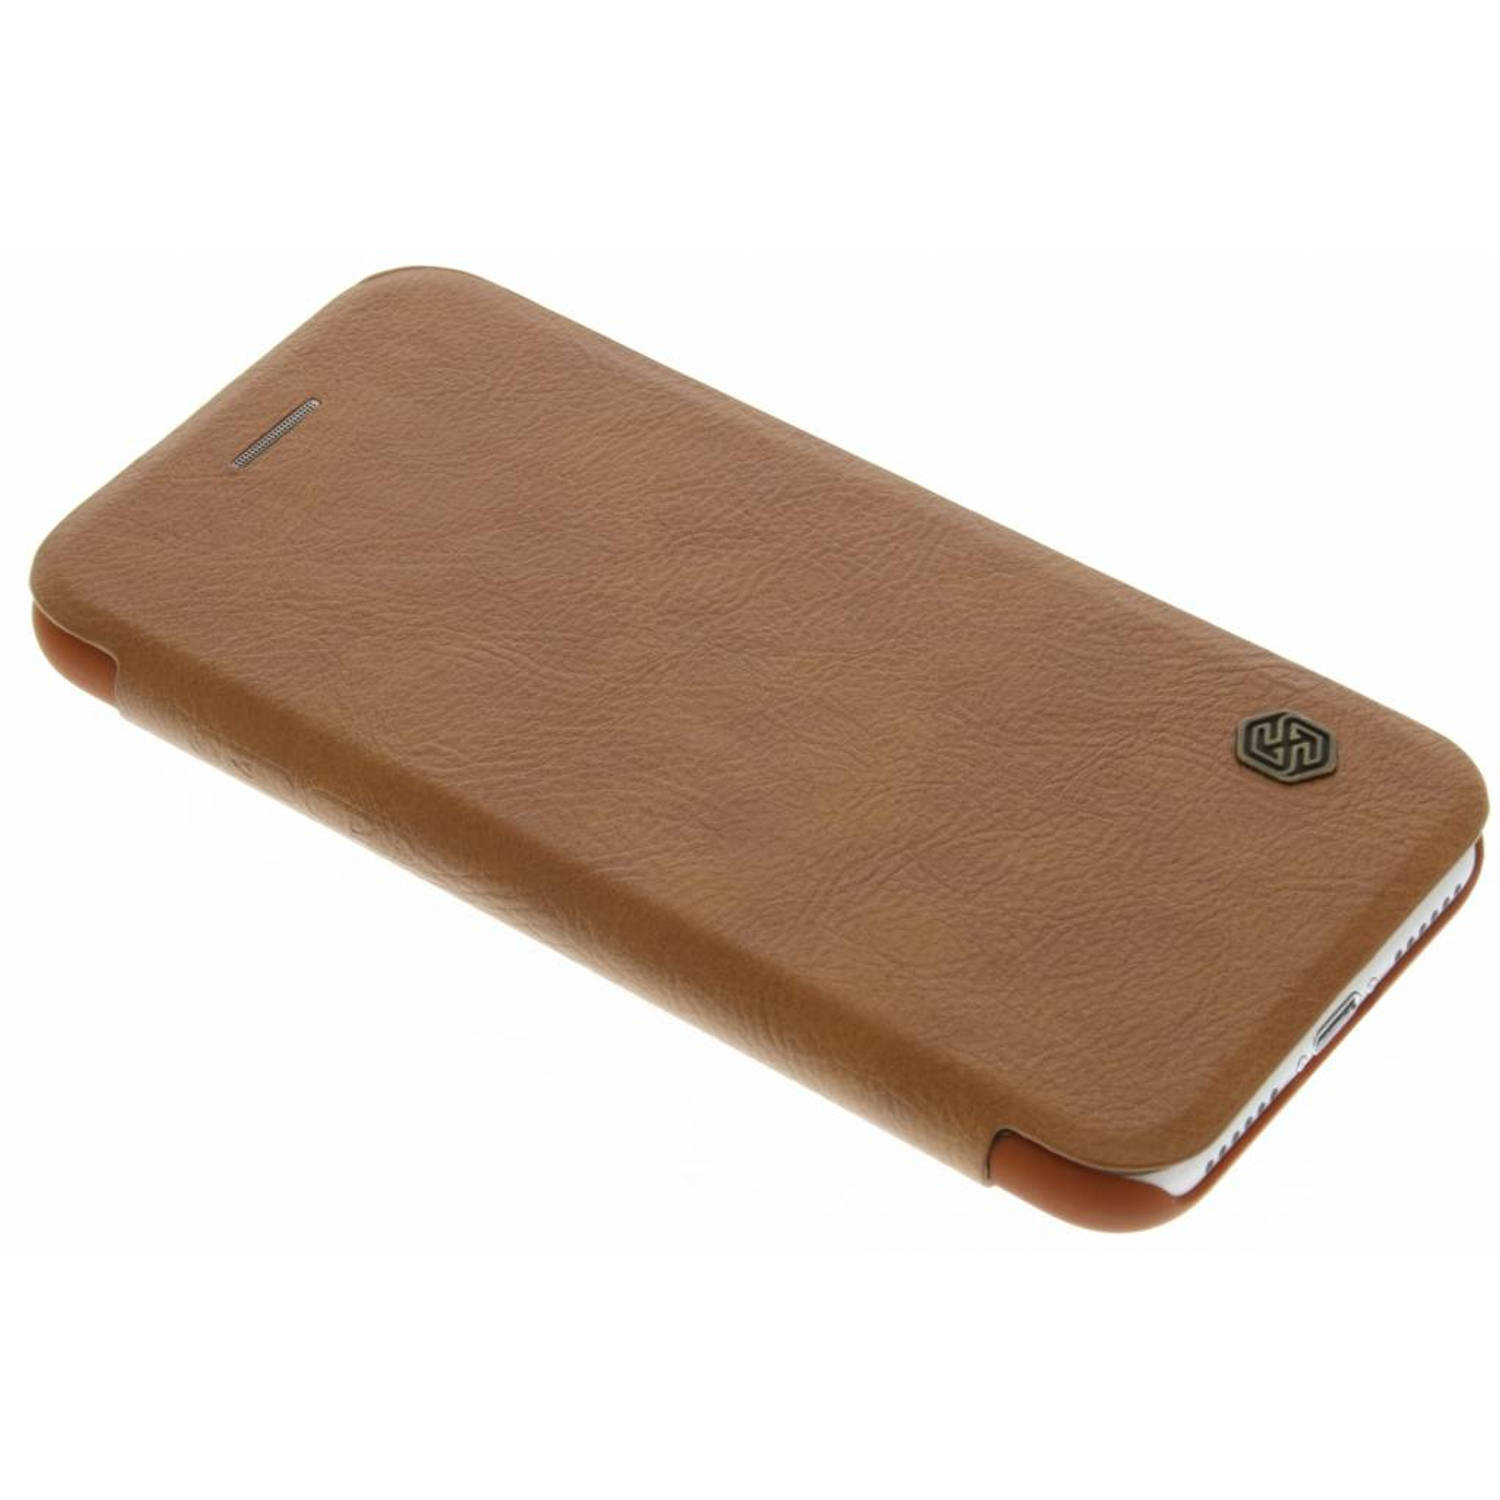 Qin Leather slim booktype hoes voor de iPhone 8 / 7 - Bruin